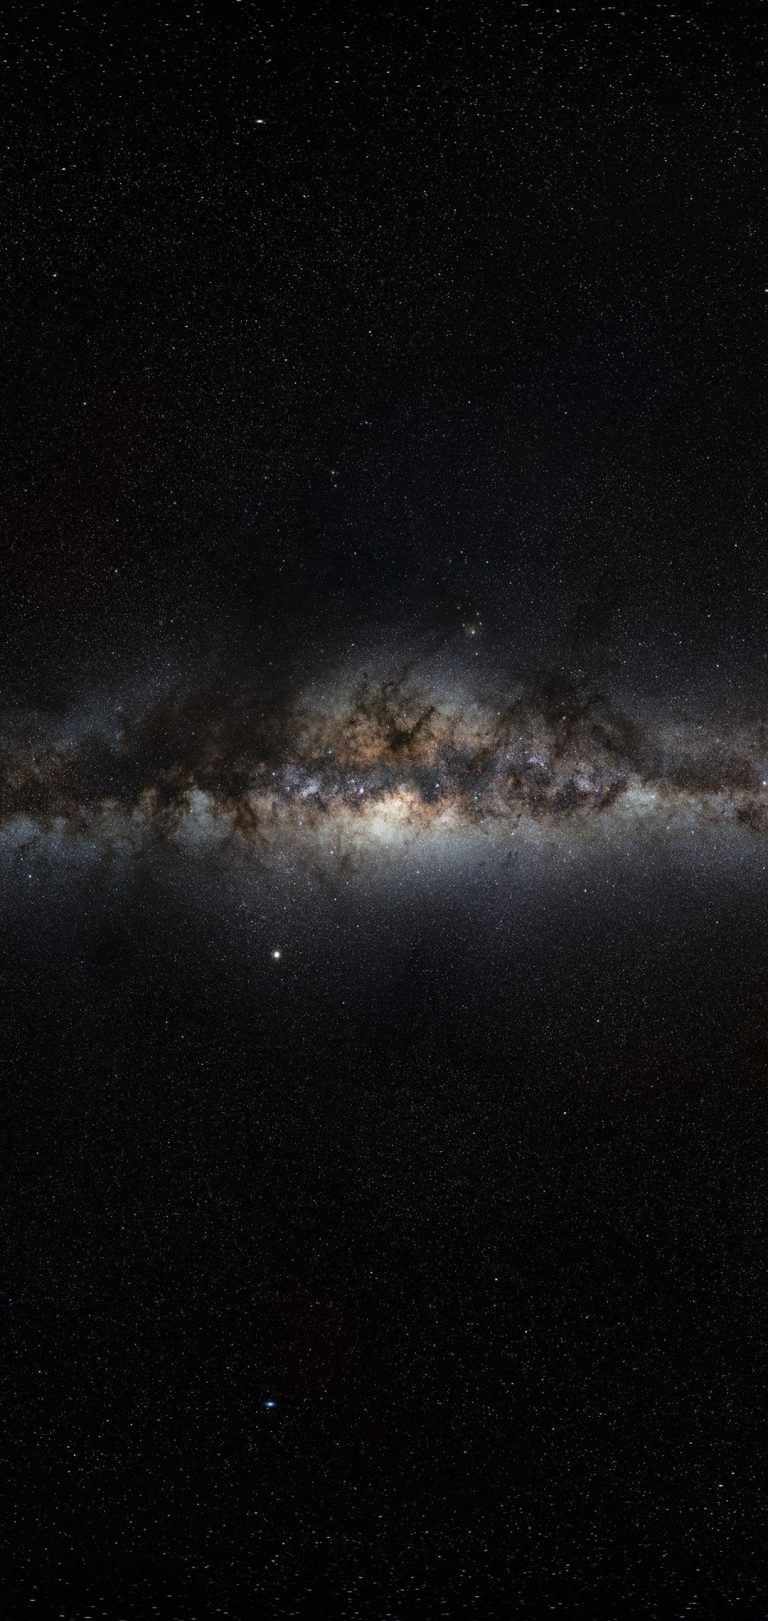 Galaxy View Wallpaper 1080x2280 768x1621